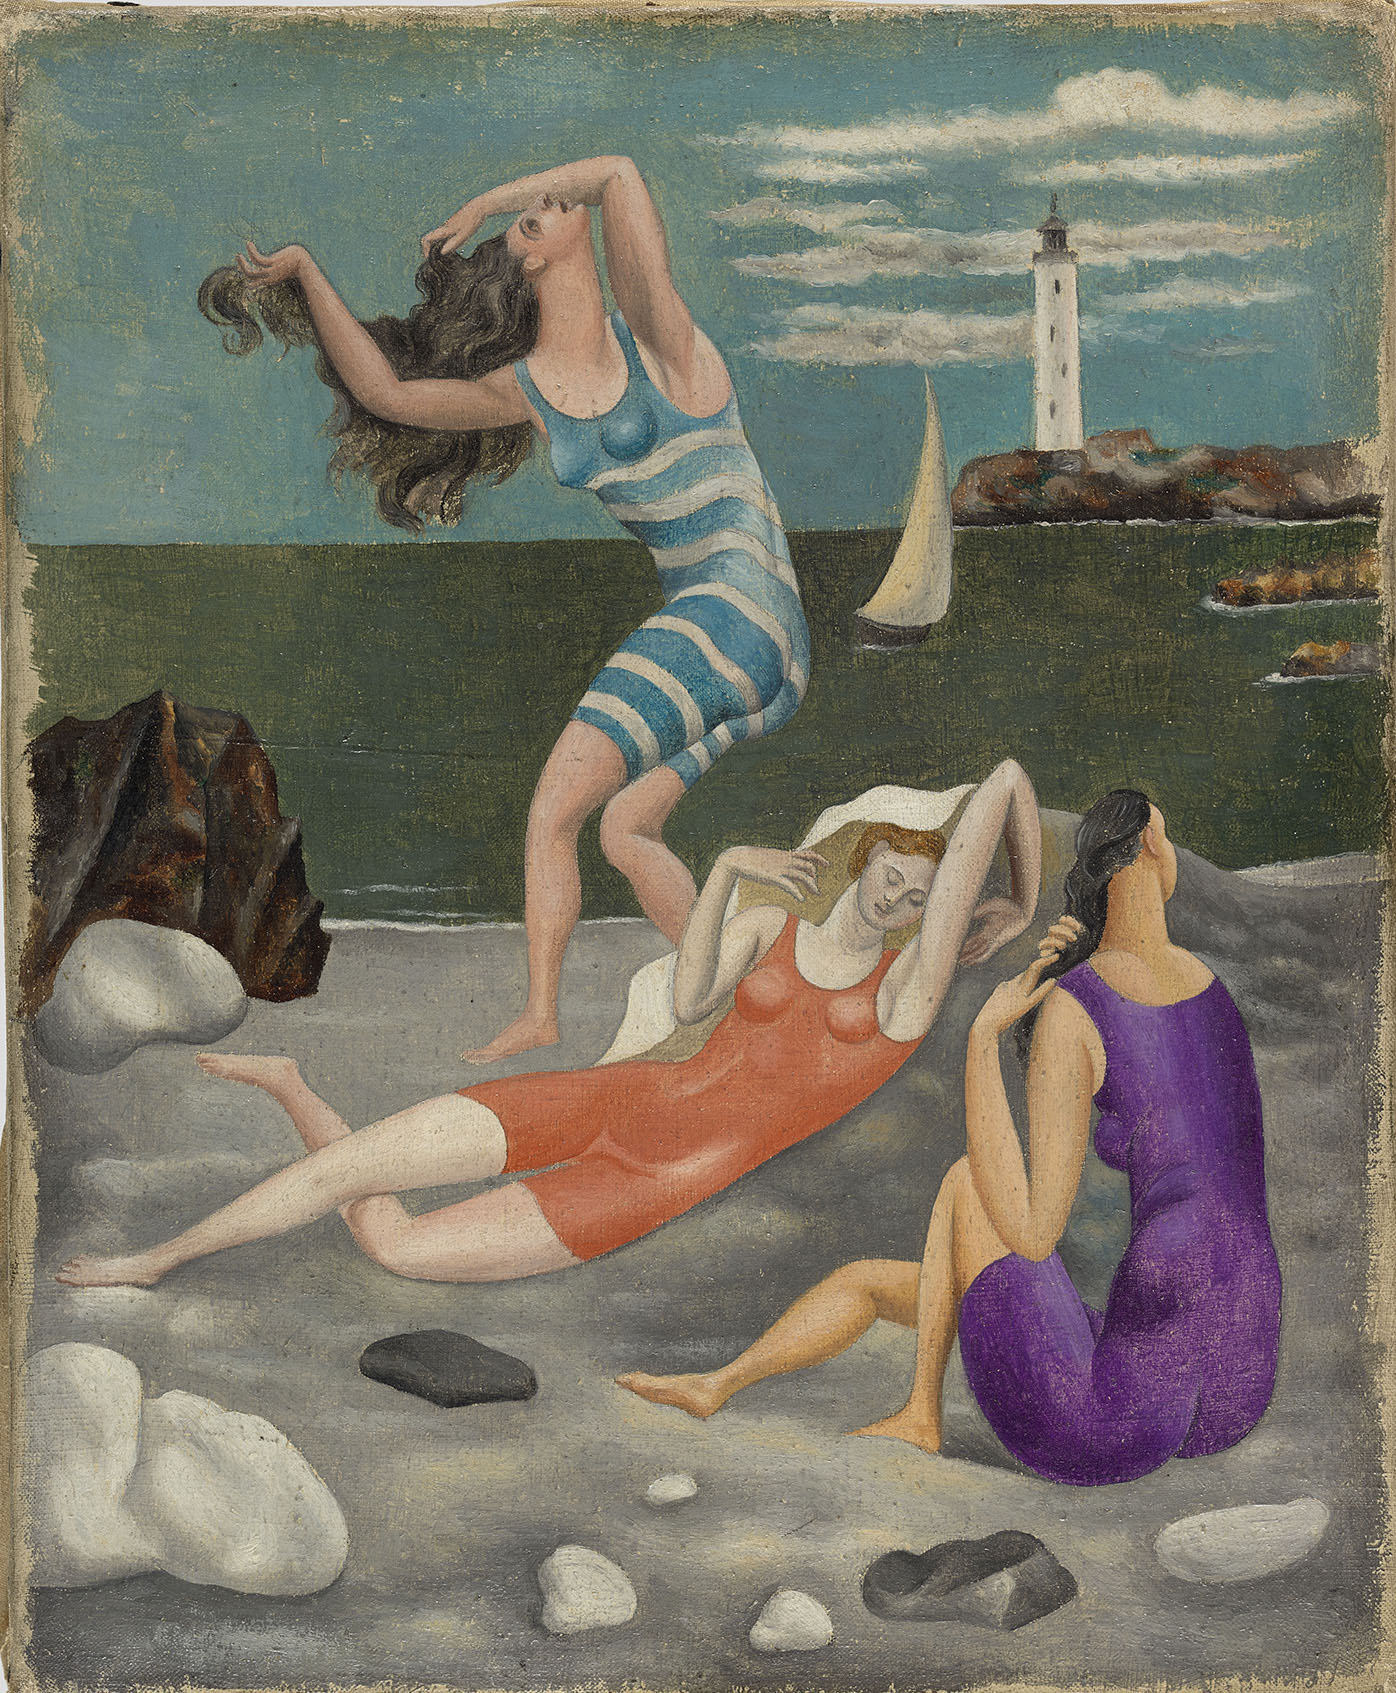 Picasso - Les Baigneuses - MP61 - 16-594975